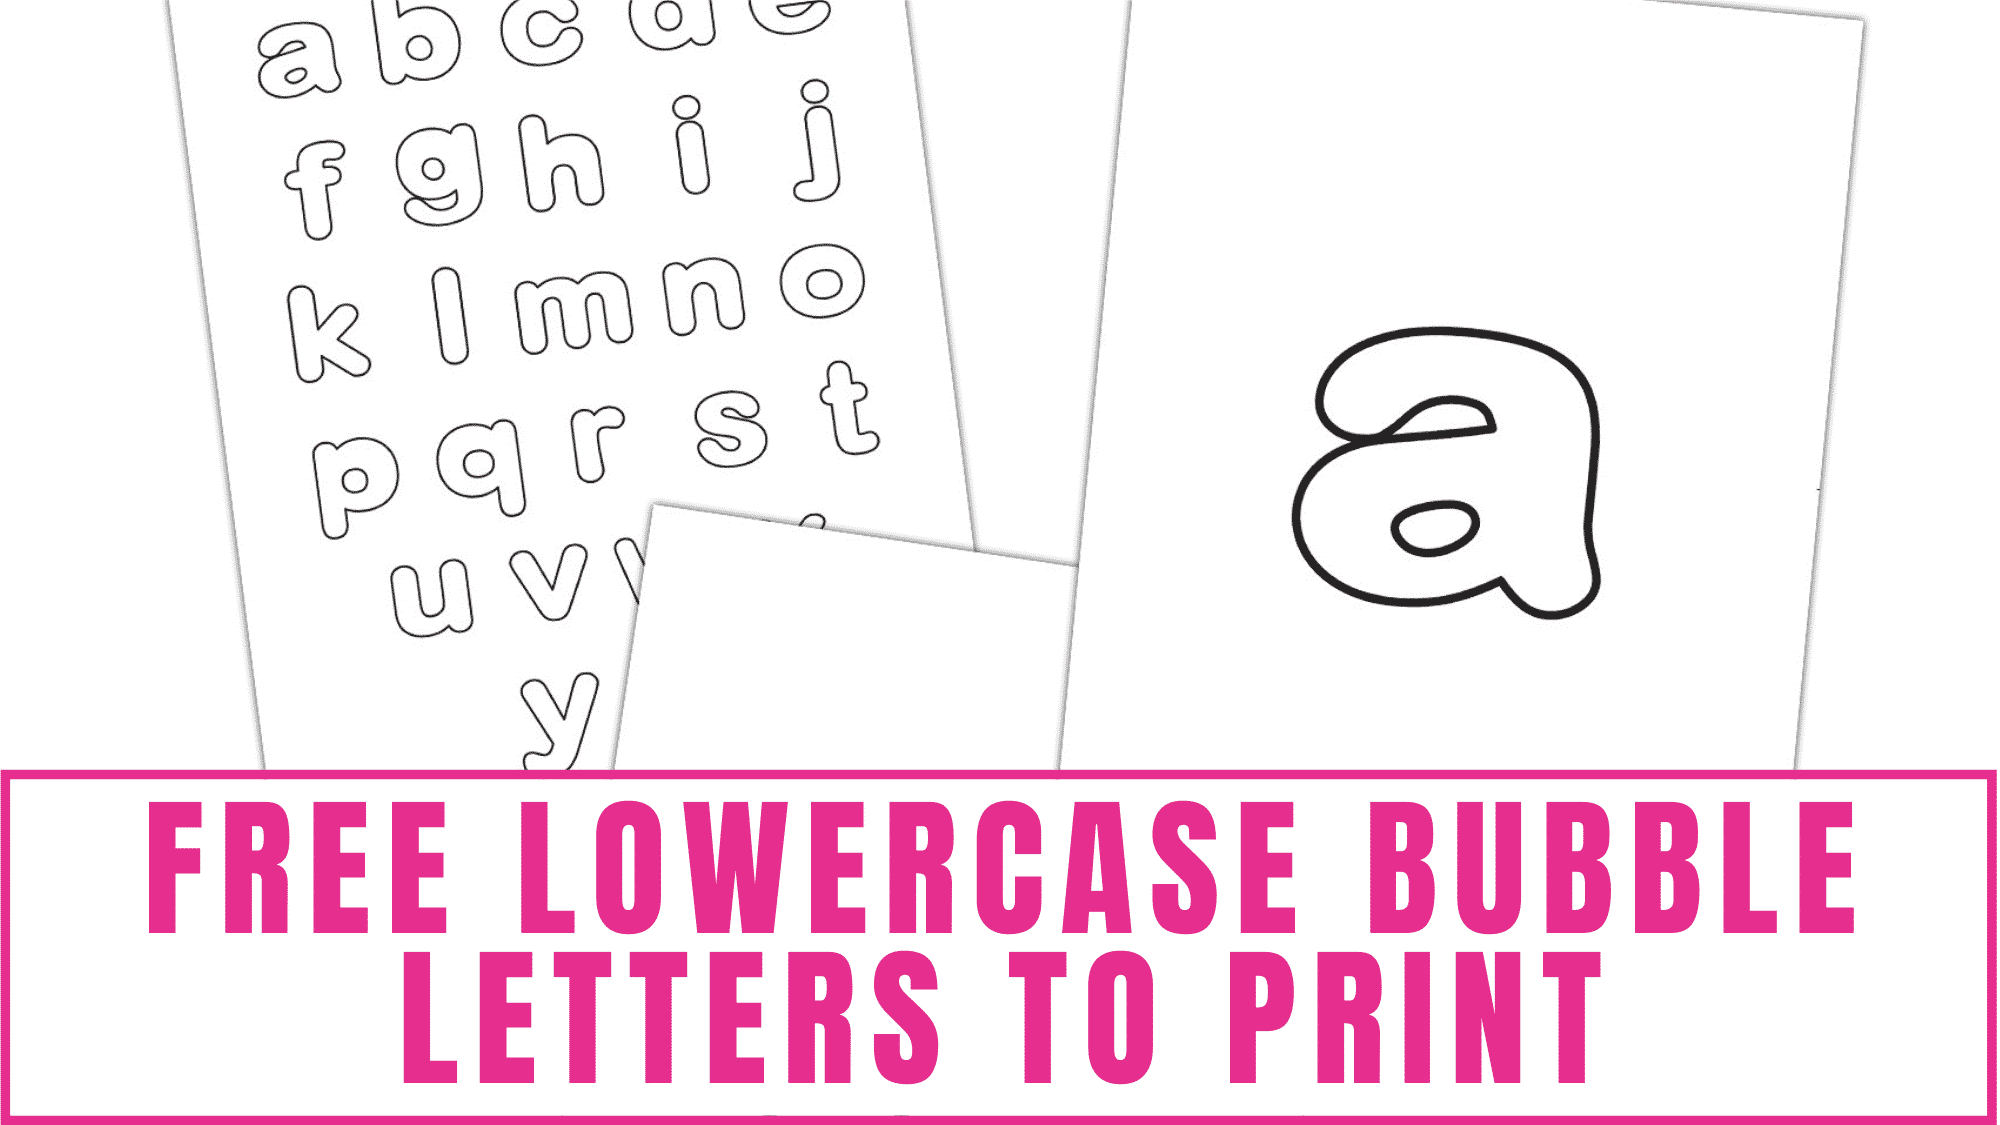 Turn these free lowercase bubble letters to print into fun coloring pages for kids or flashcards to help them learn the alphabet.